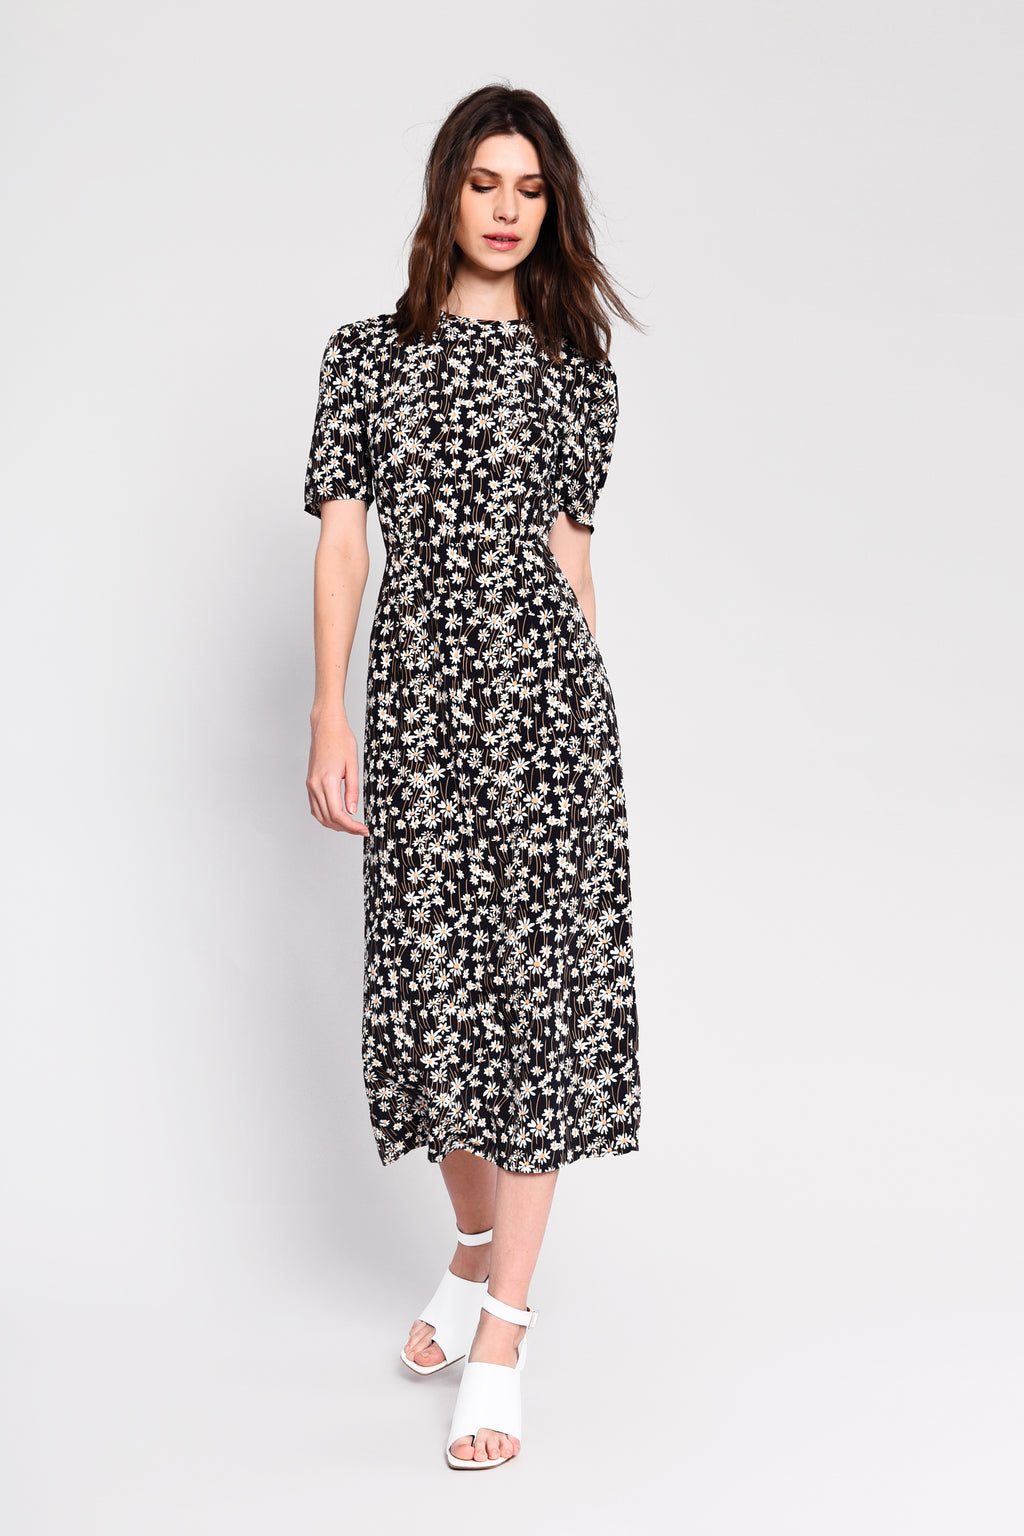 Ditsy floral midi dress